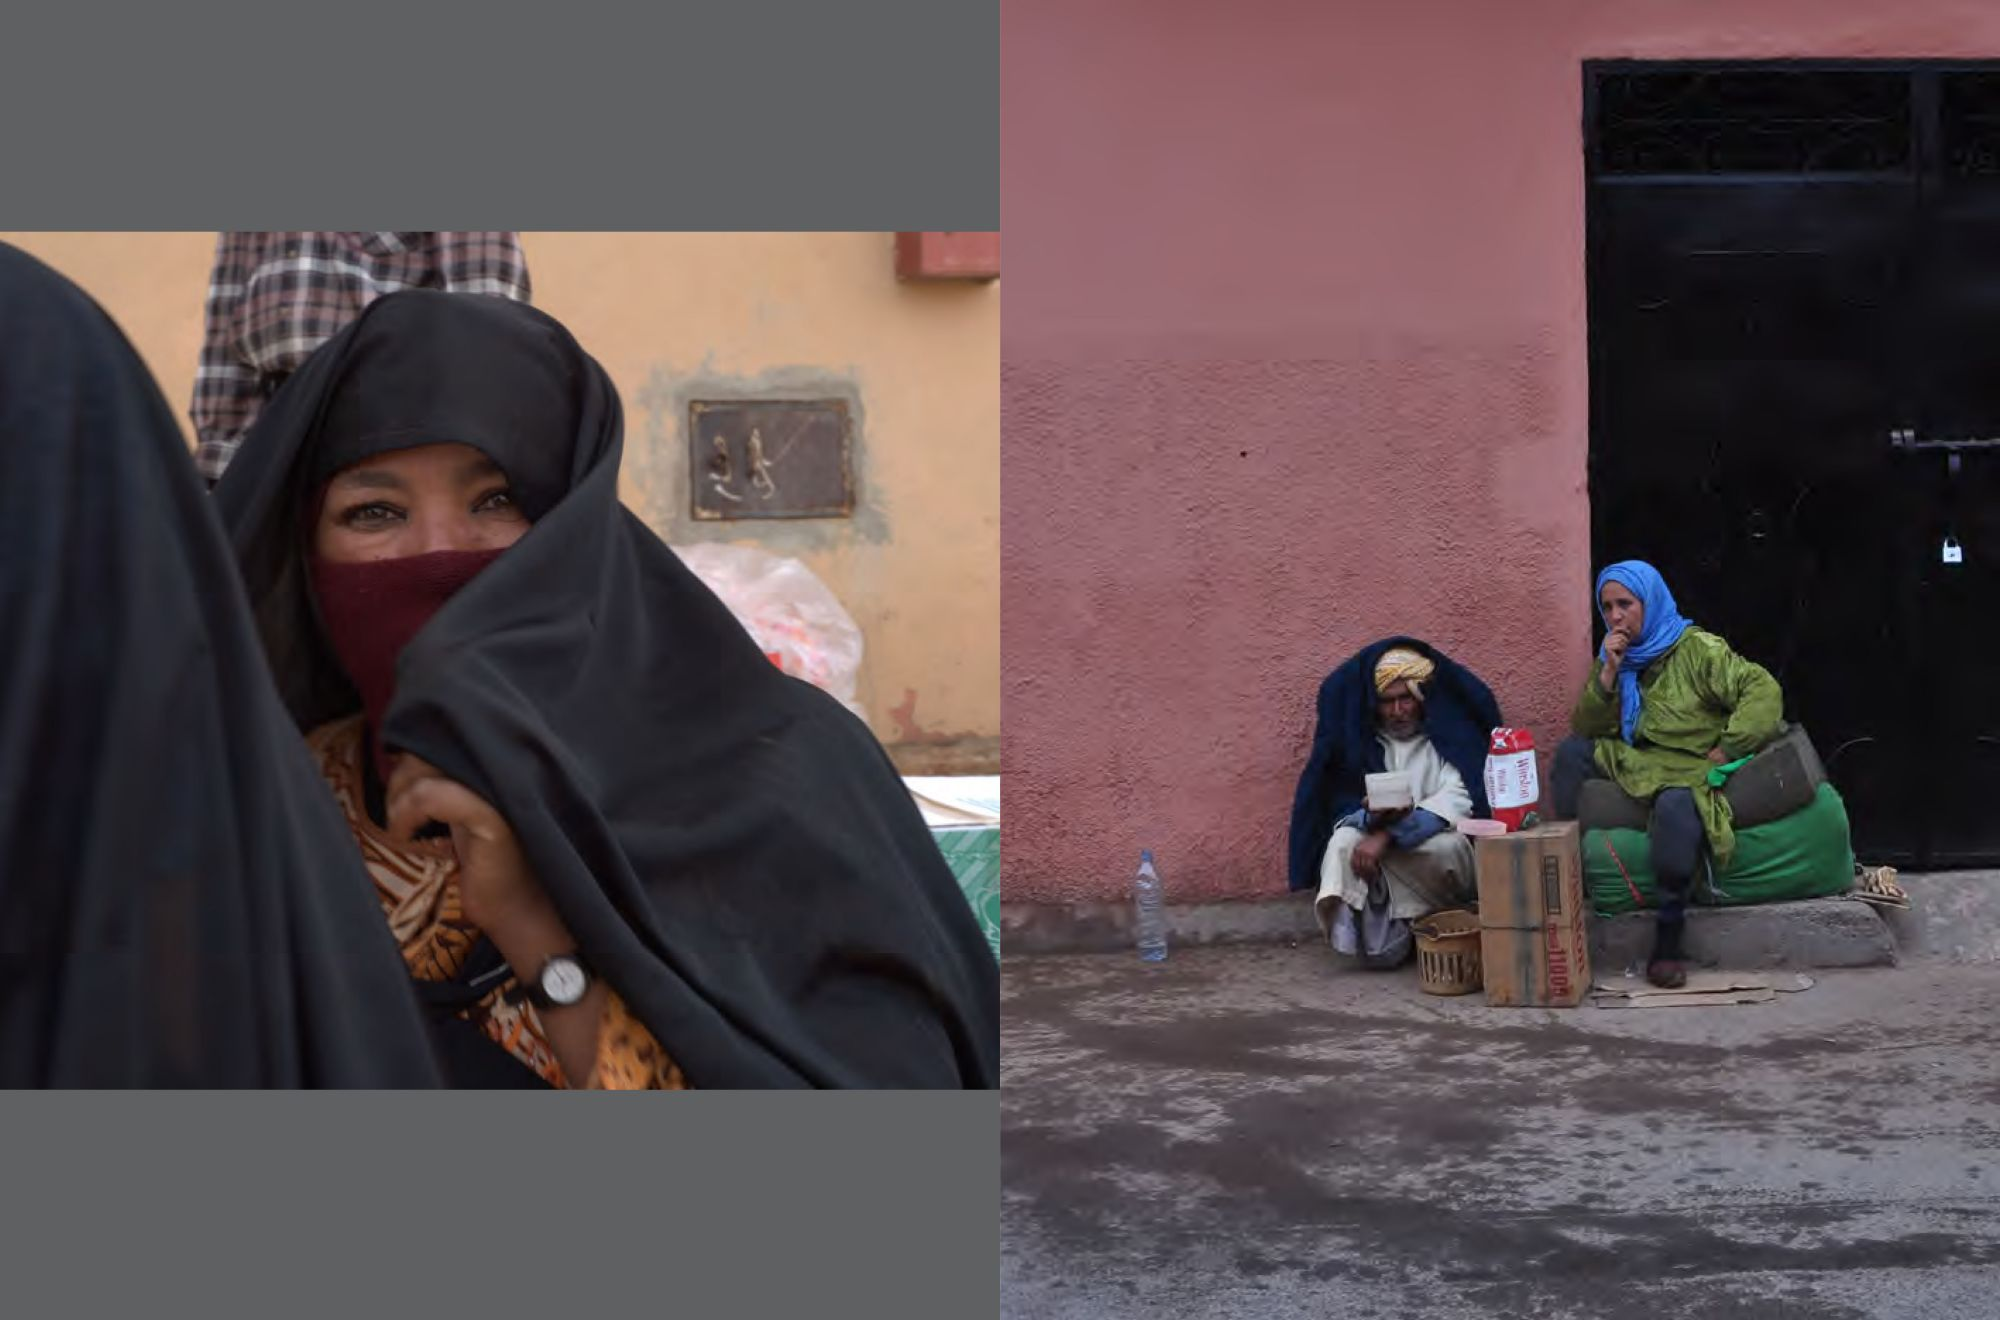 Page 90: Moroccan Woman / Page: 91 Selling cigarettes